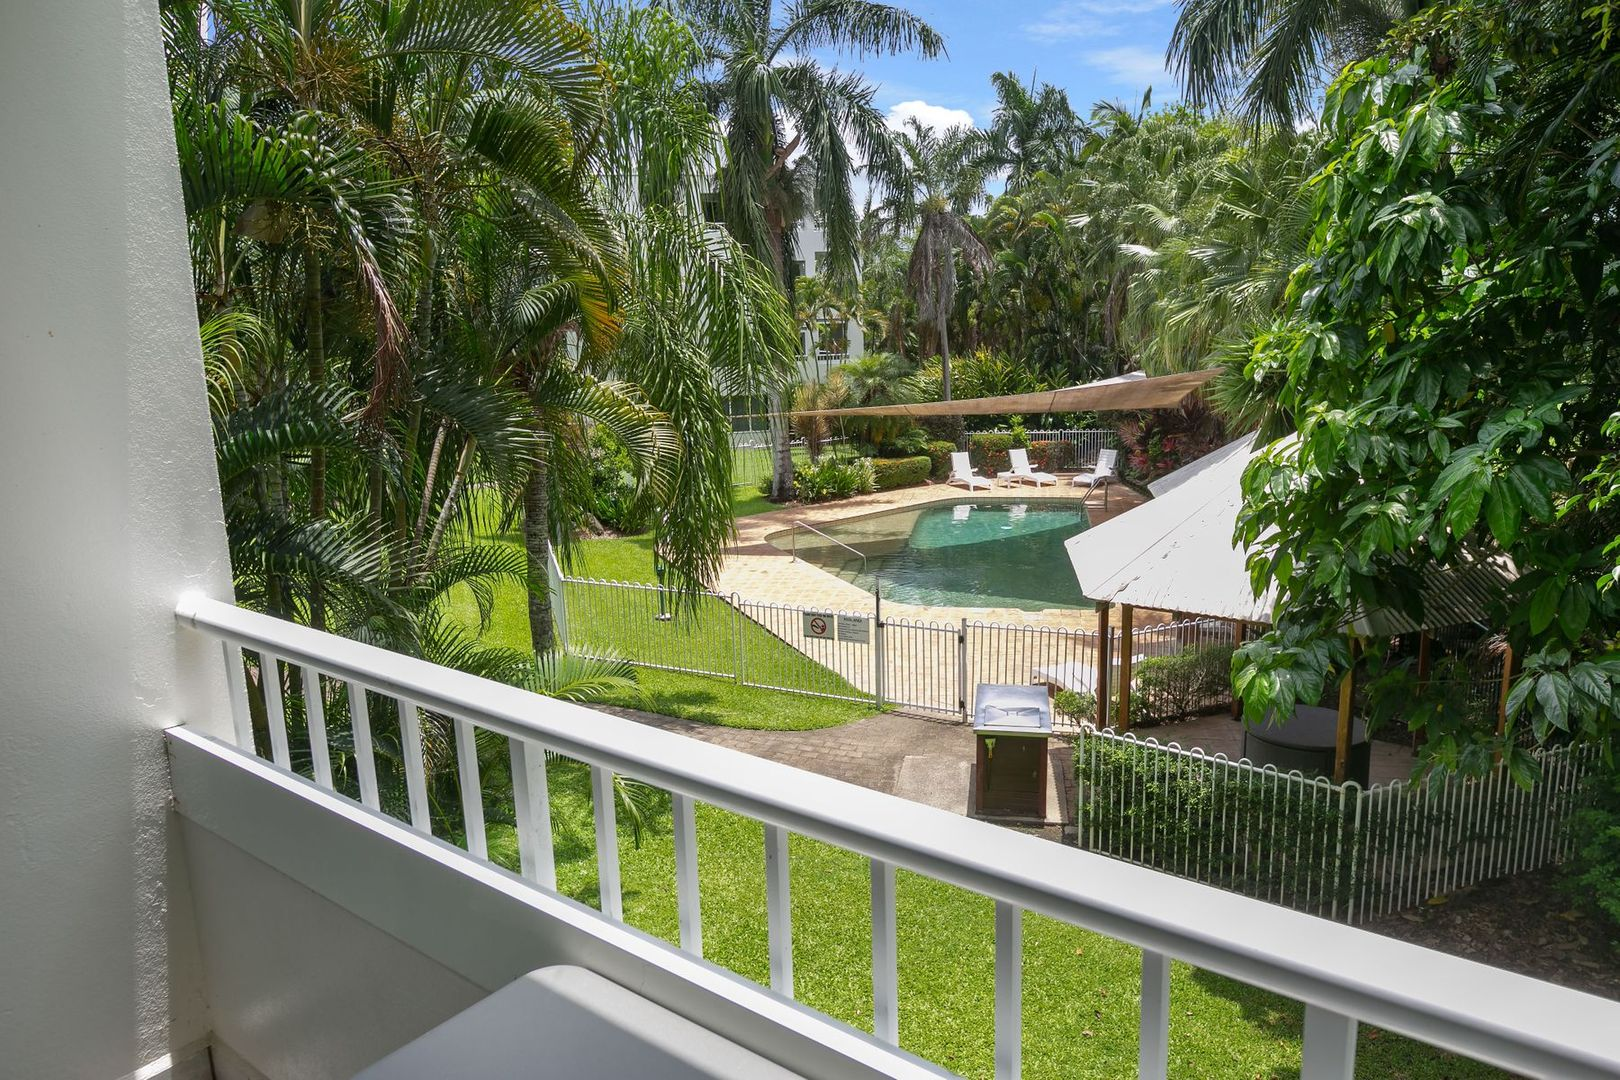 412/305-341 Coral Coast Drive, Palm Cove QLD 4879, Image 2